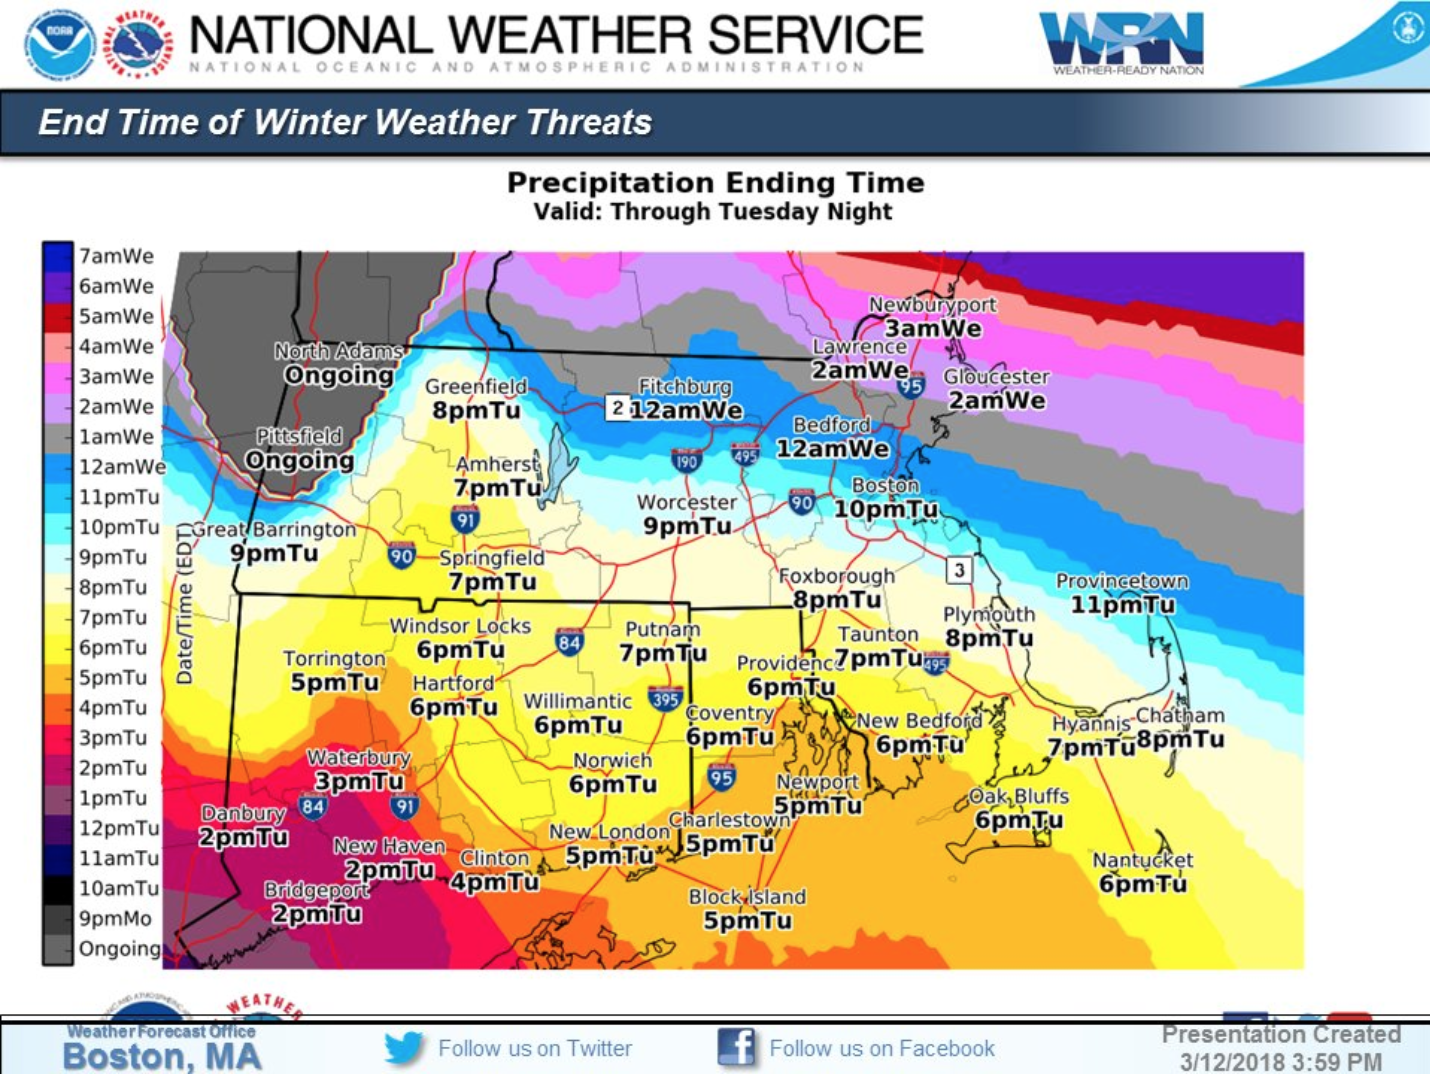 Anticipated end times for the winter storm in Massachusetts